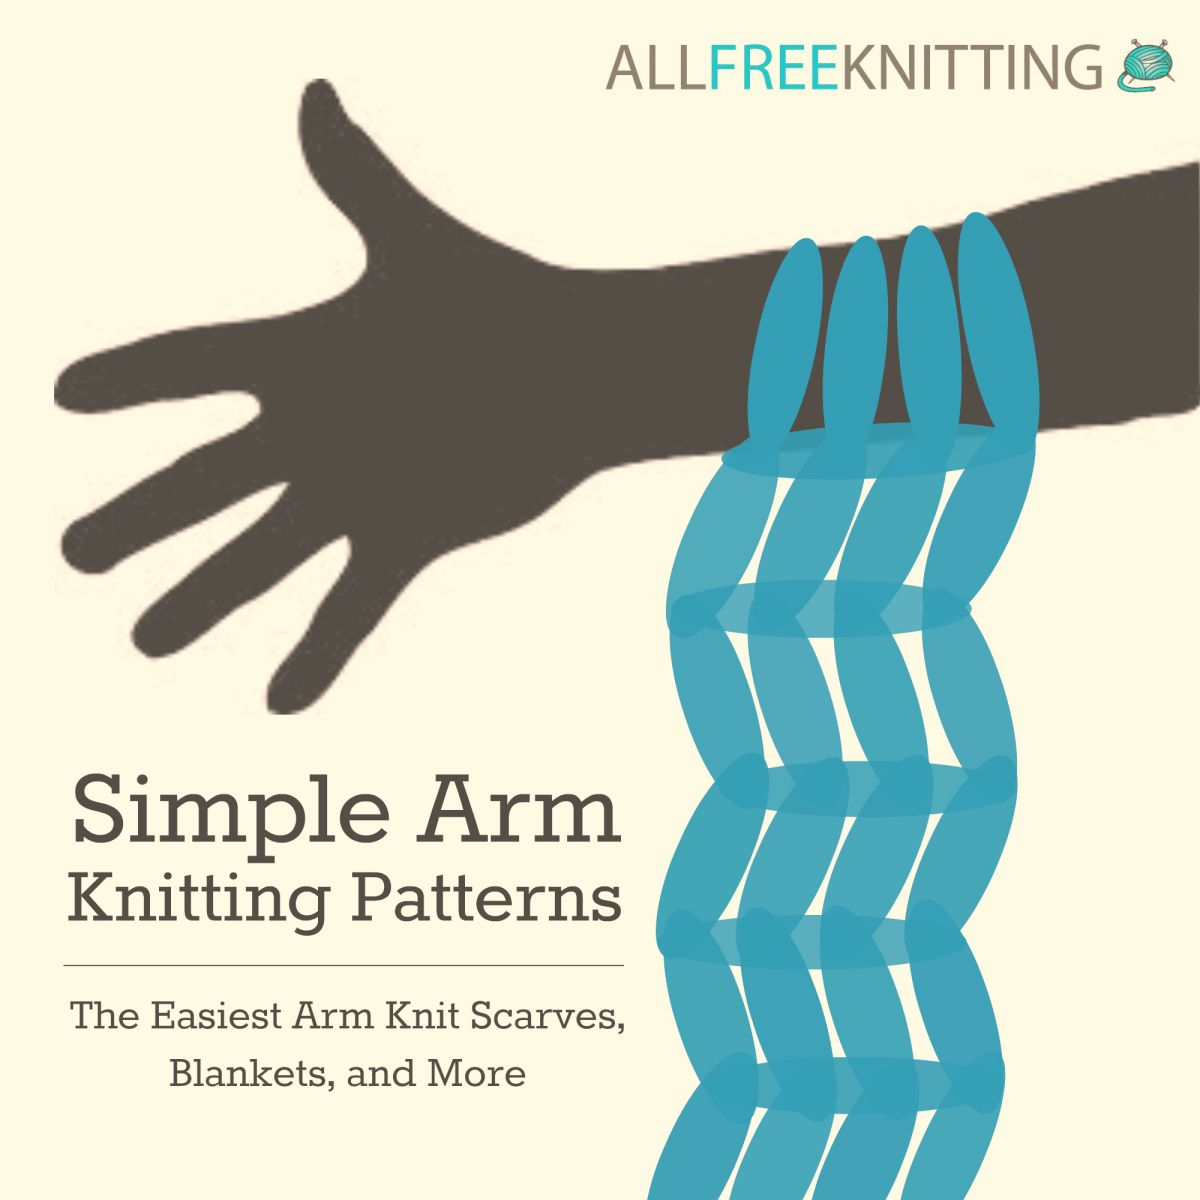 Simple Arm Knitting Patterns: The Easiest Arm Knit Scarves, Blankets, and More